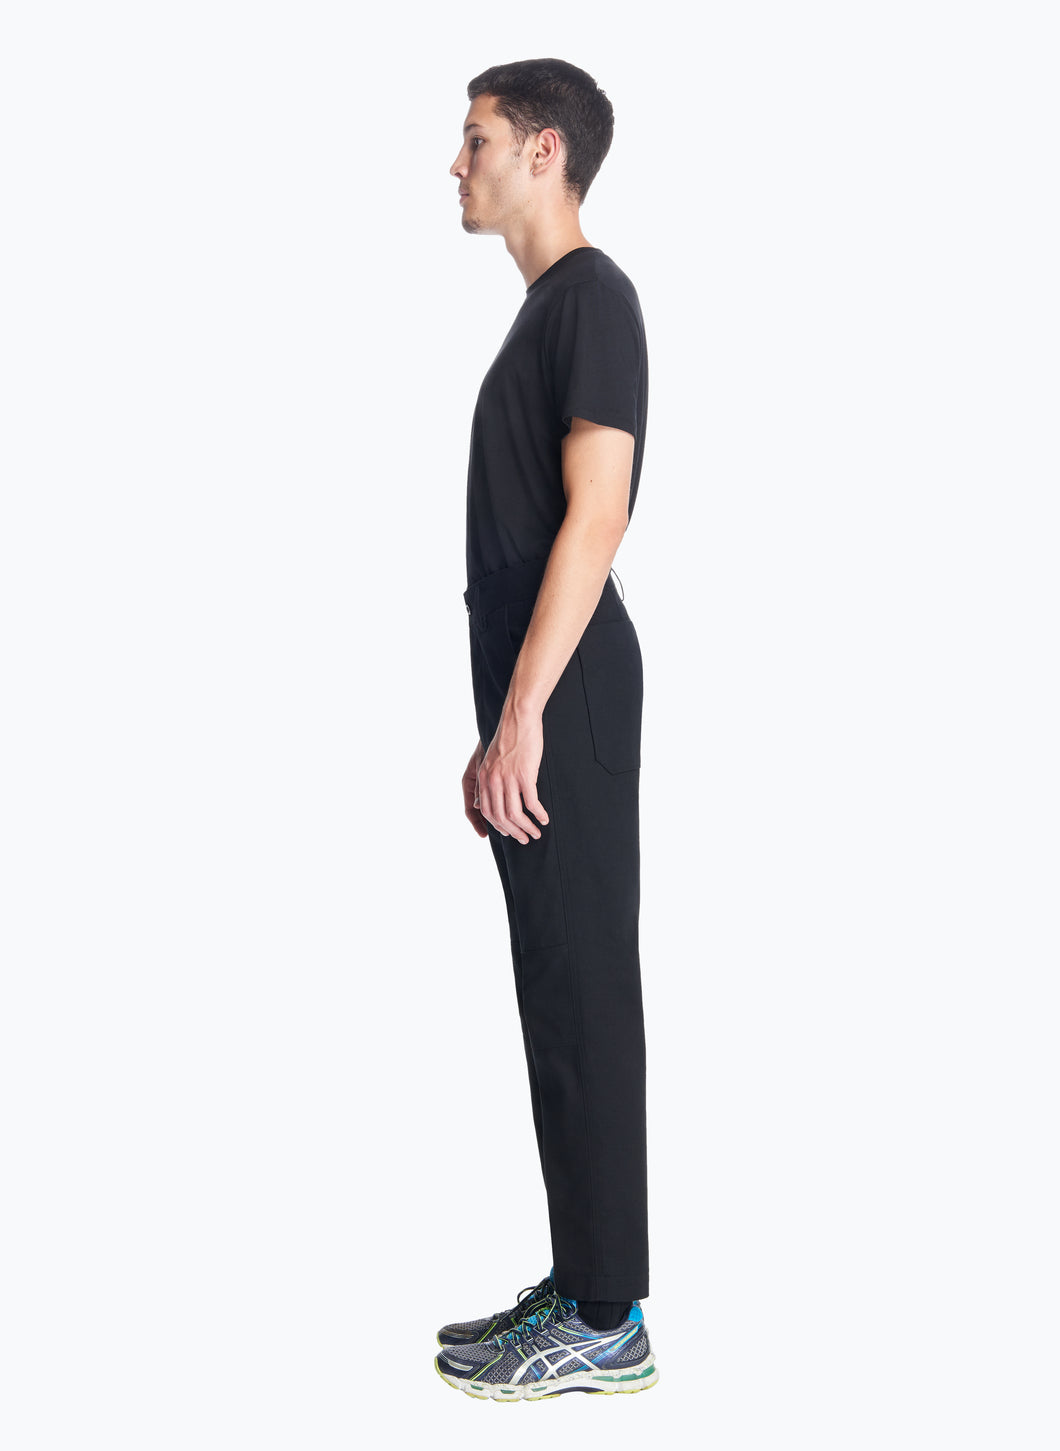 High-Waisted Pants with Reinforced Knees in Black Canvas